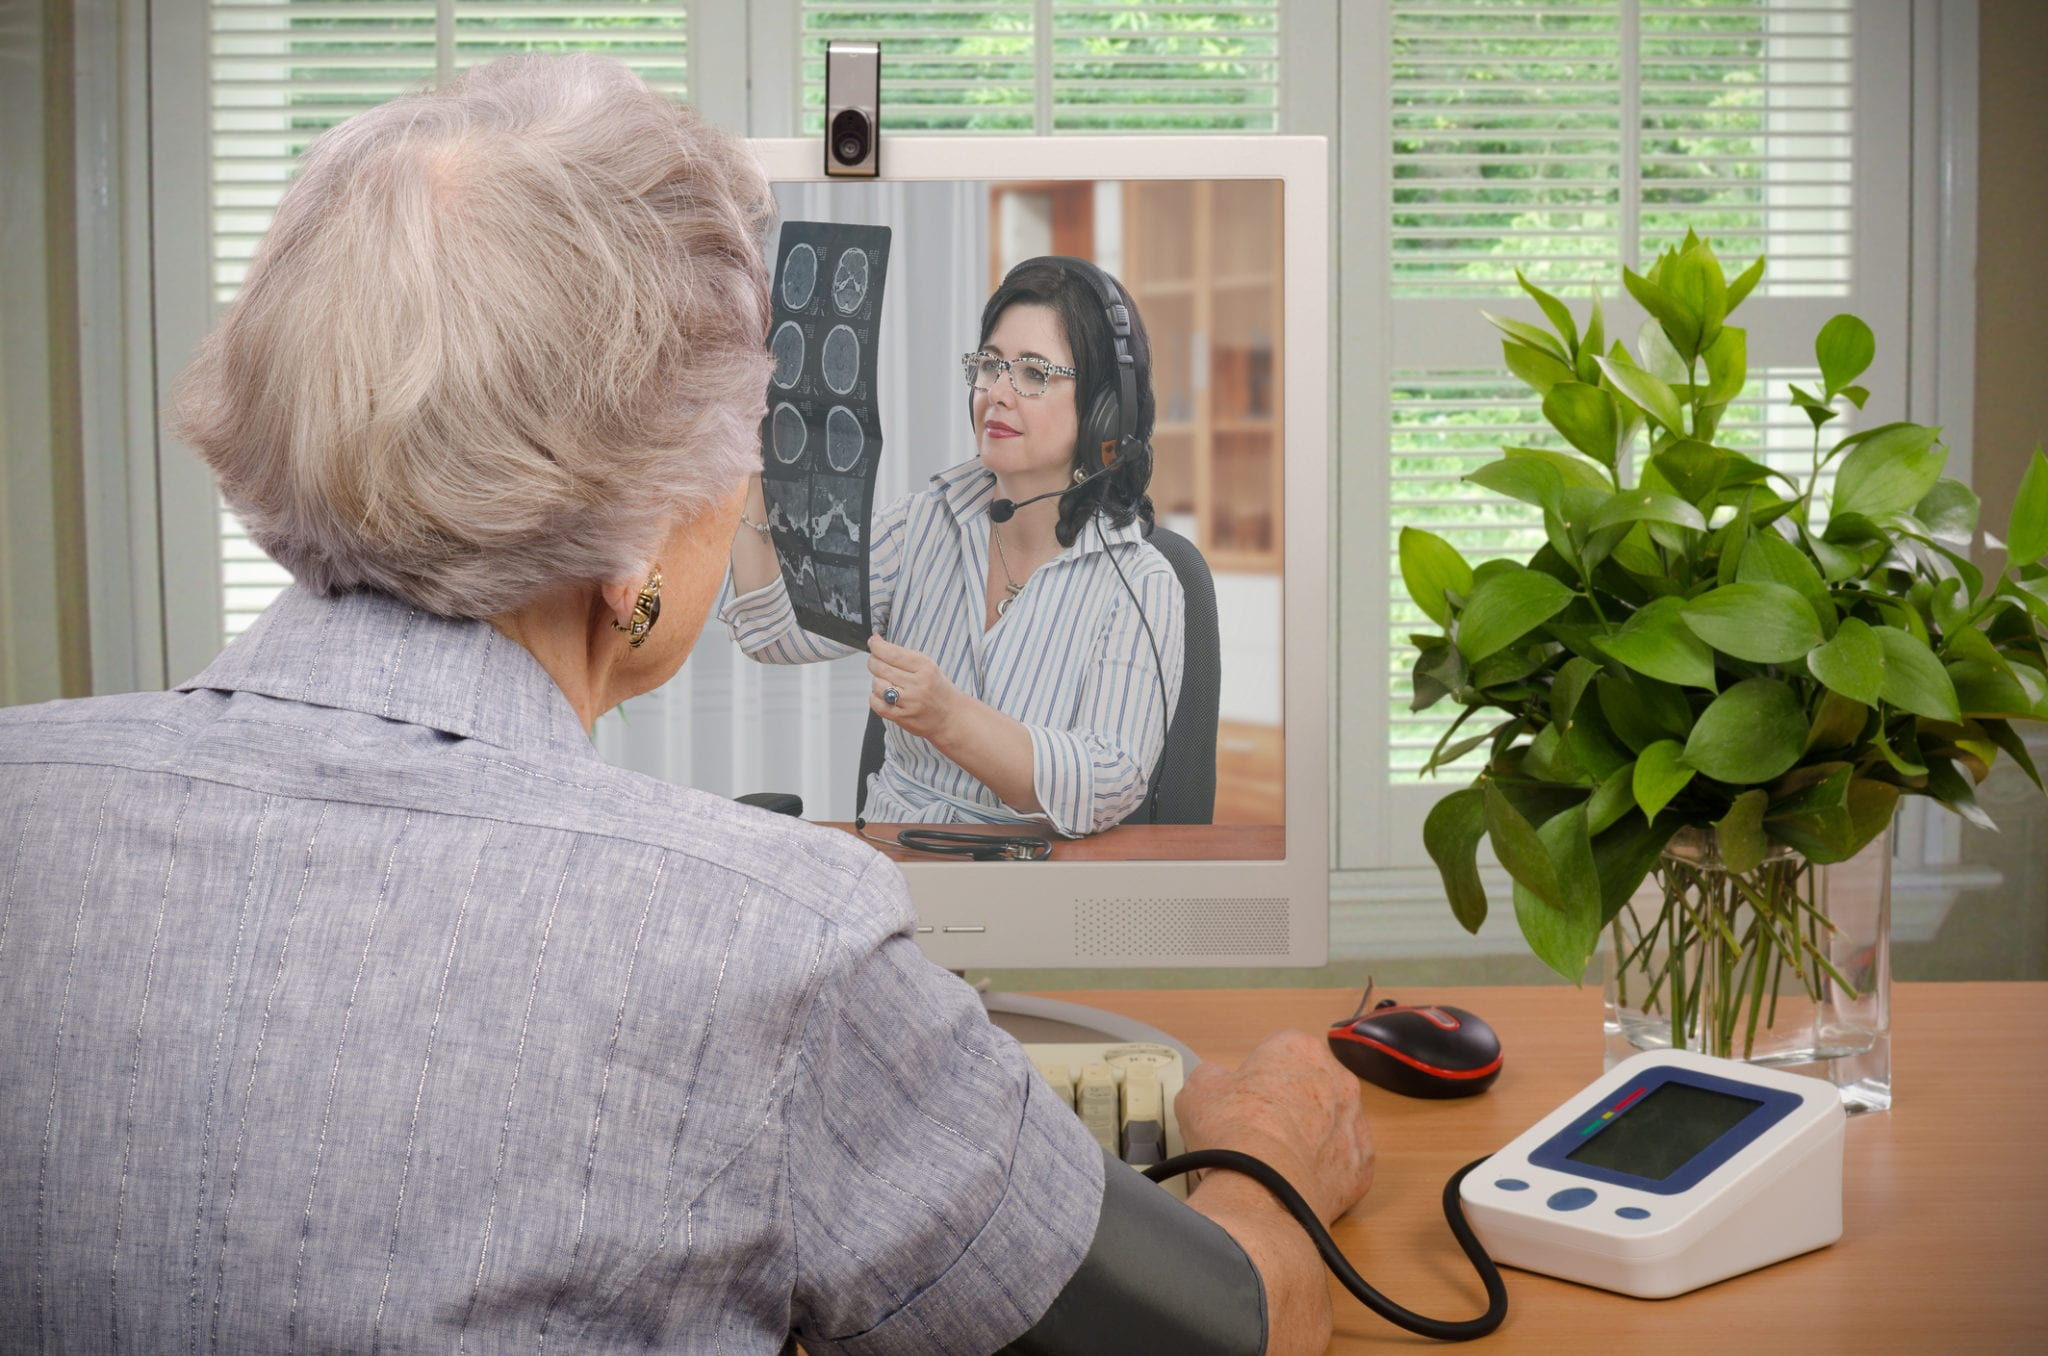 Patients across the country have better access to healthcare services as telemedicine expands. Here are more facts about telemedicine and its growth.